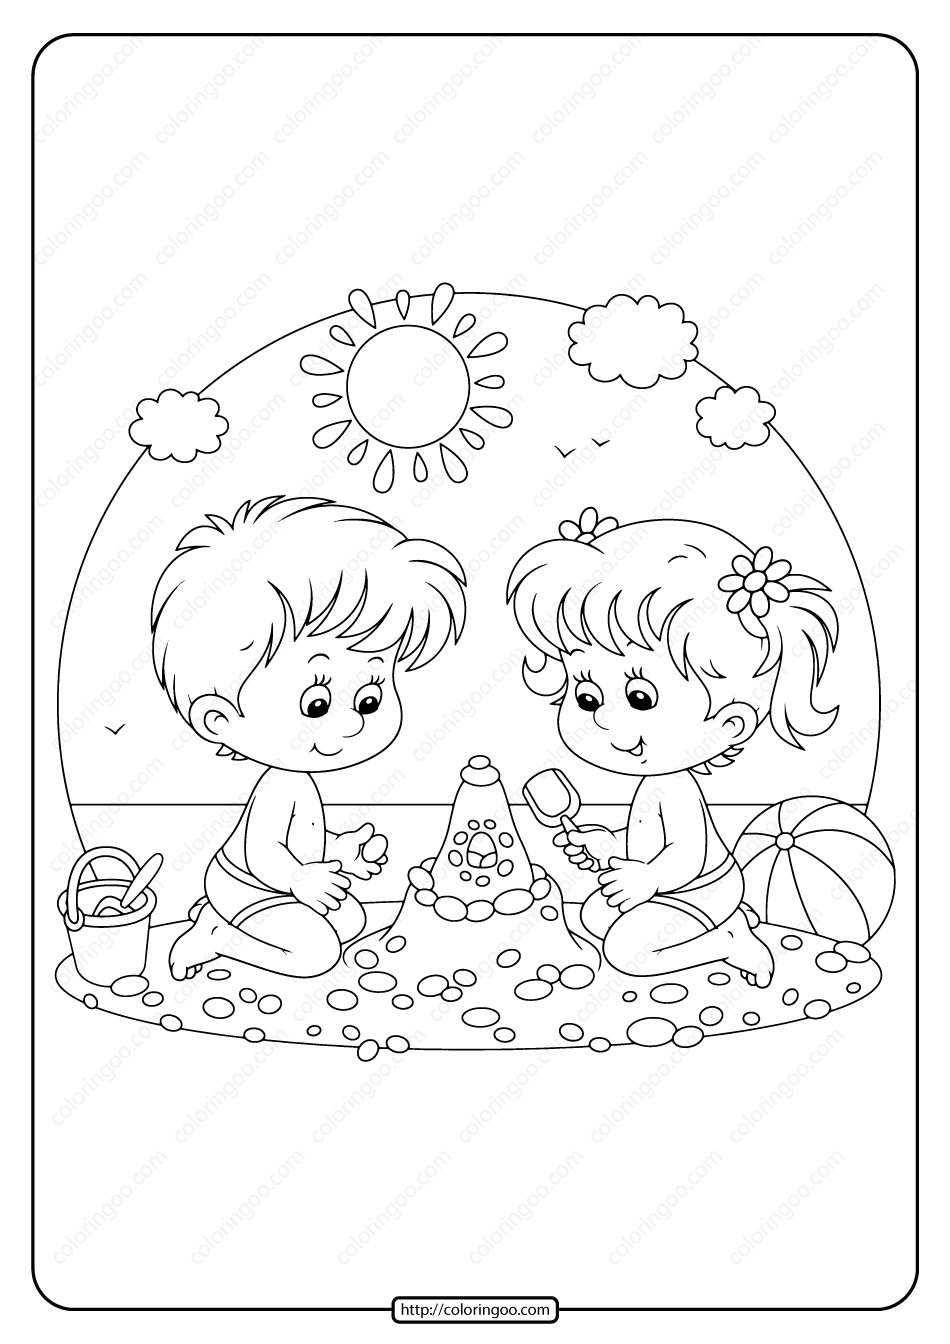 Boy And Girl Playing On The Beach Coloring Page Beach Coloring Pages Coloring Pages Girls Play [ 1344 x 950 Pixel ]